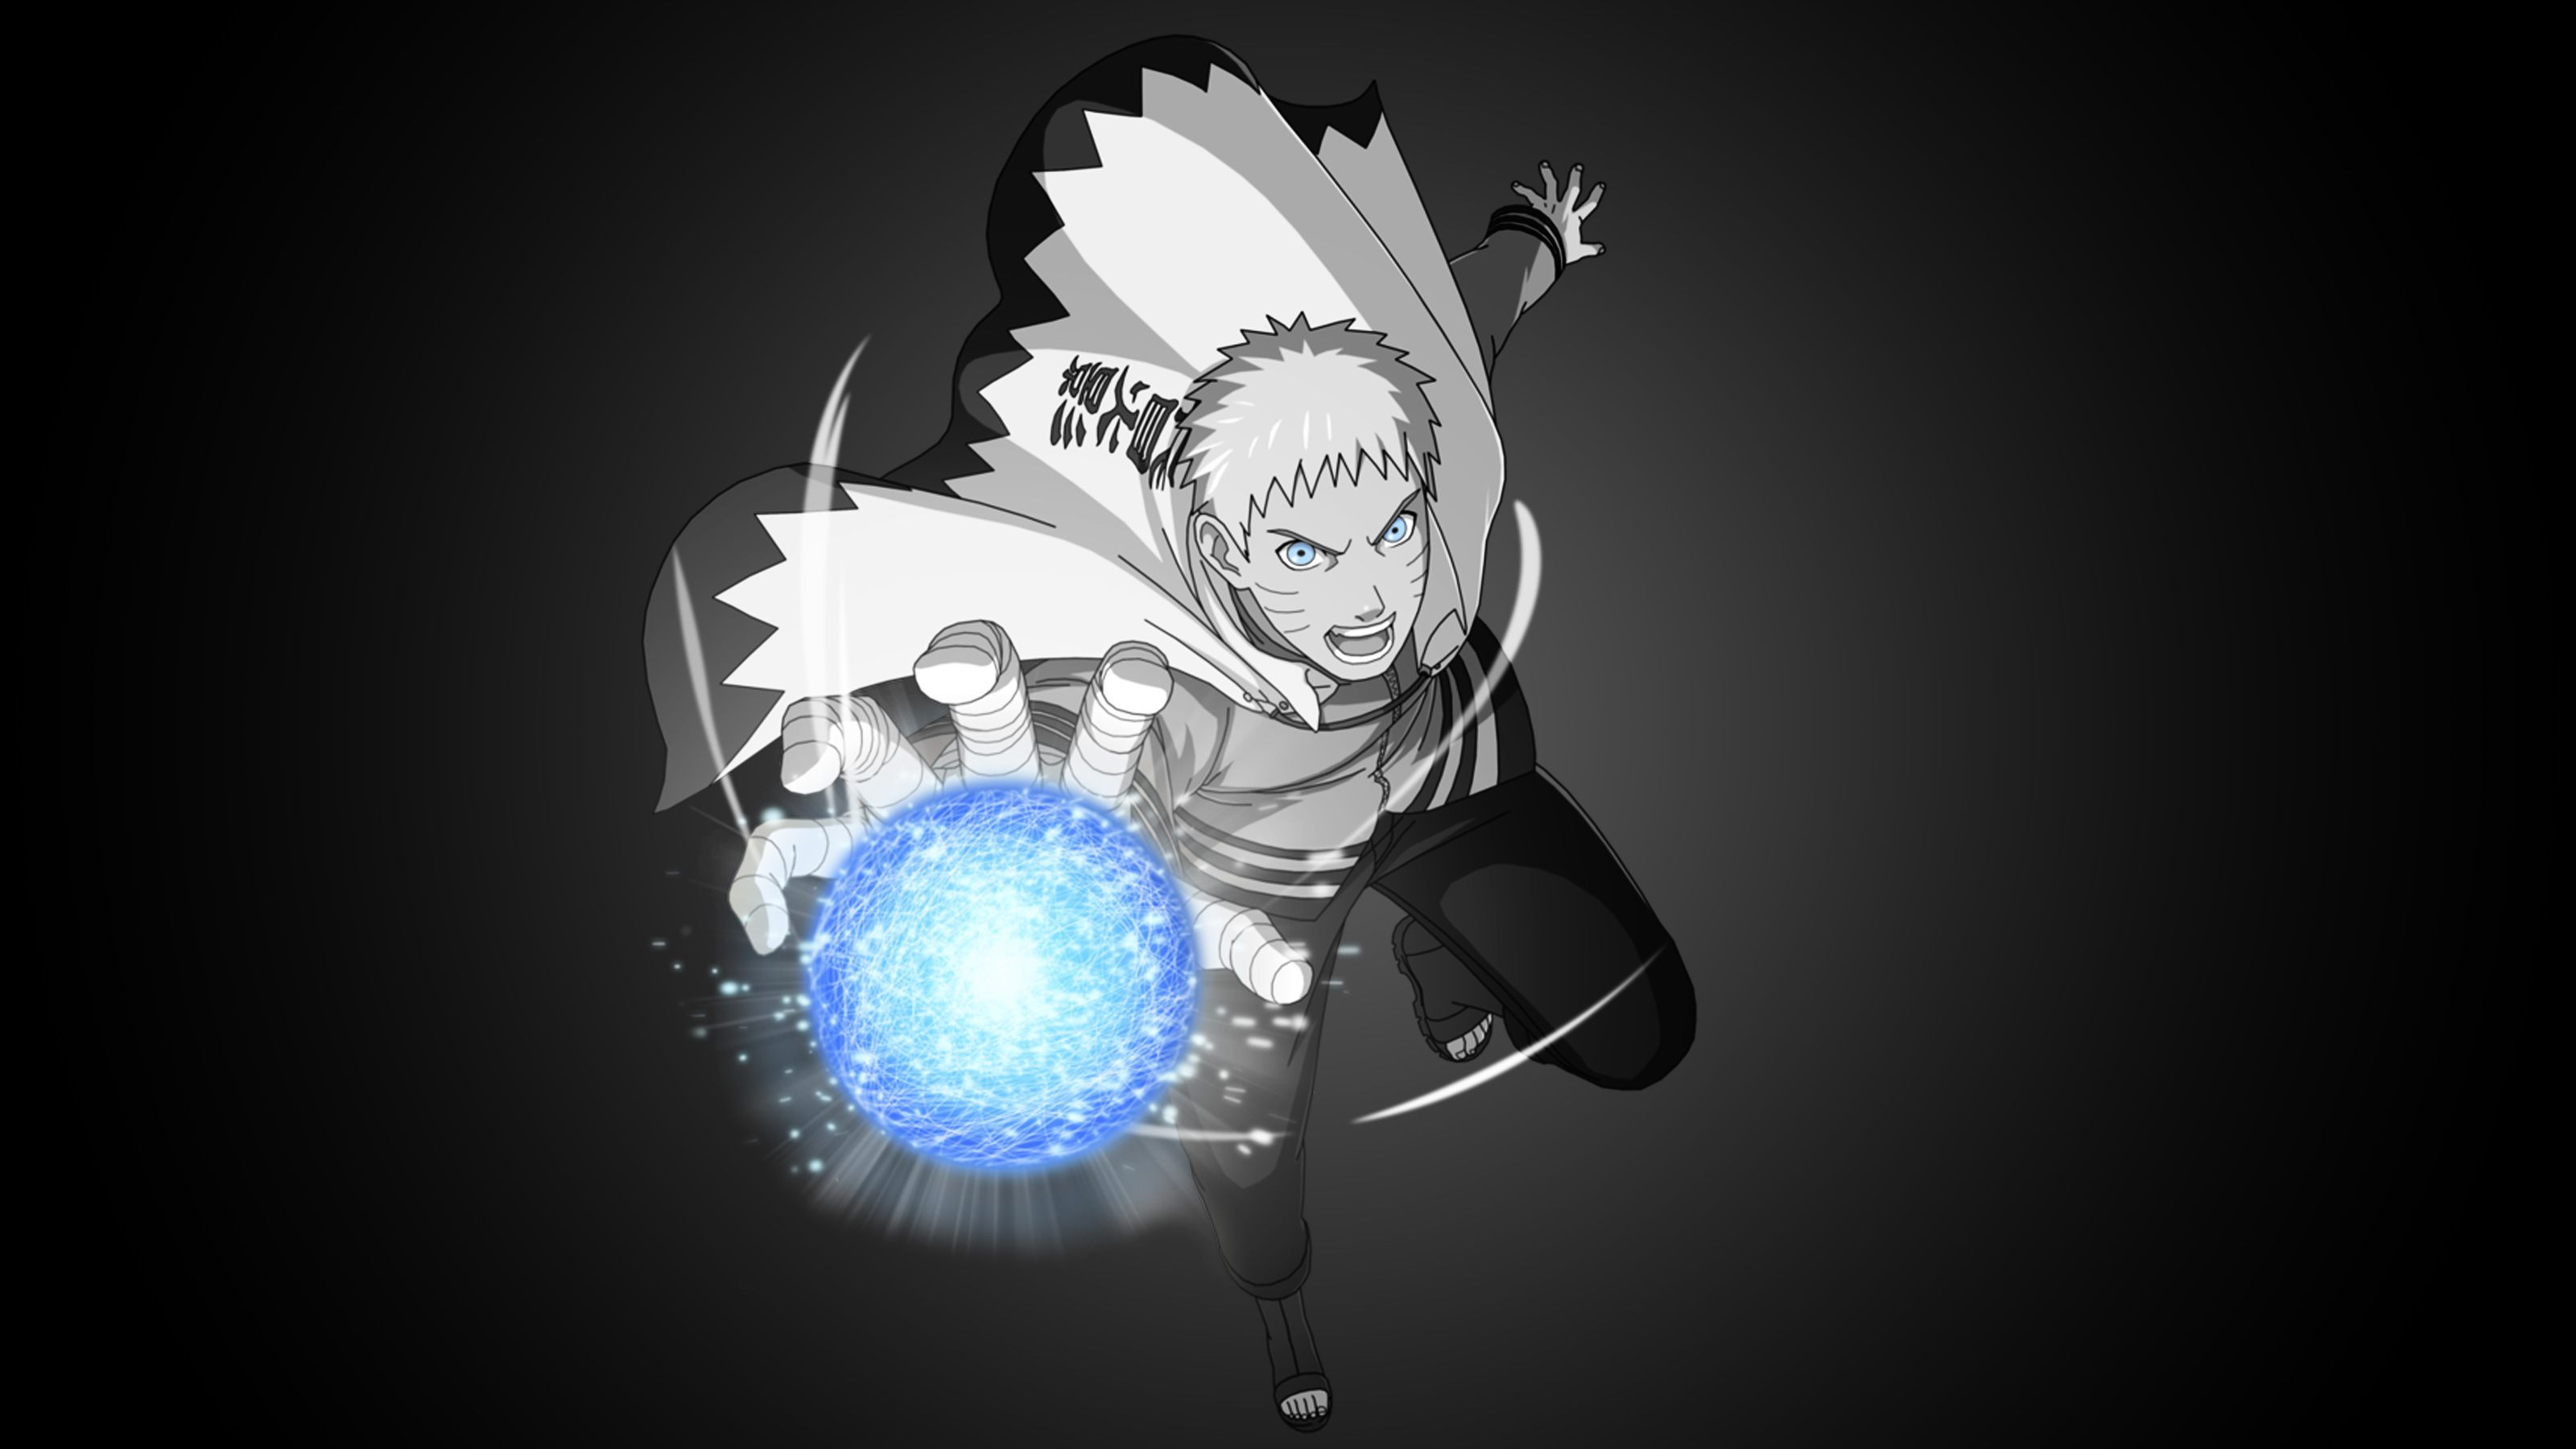 Naruto Black And White Wallpaper Hd Naruto Rasengan Hd Anime 4k Wallpapers Images 8052 Naruto Sh Hd Anime Wallpapers Naruto Wallpaper Iphone Naruto Wallpaper